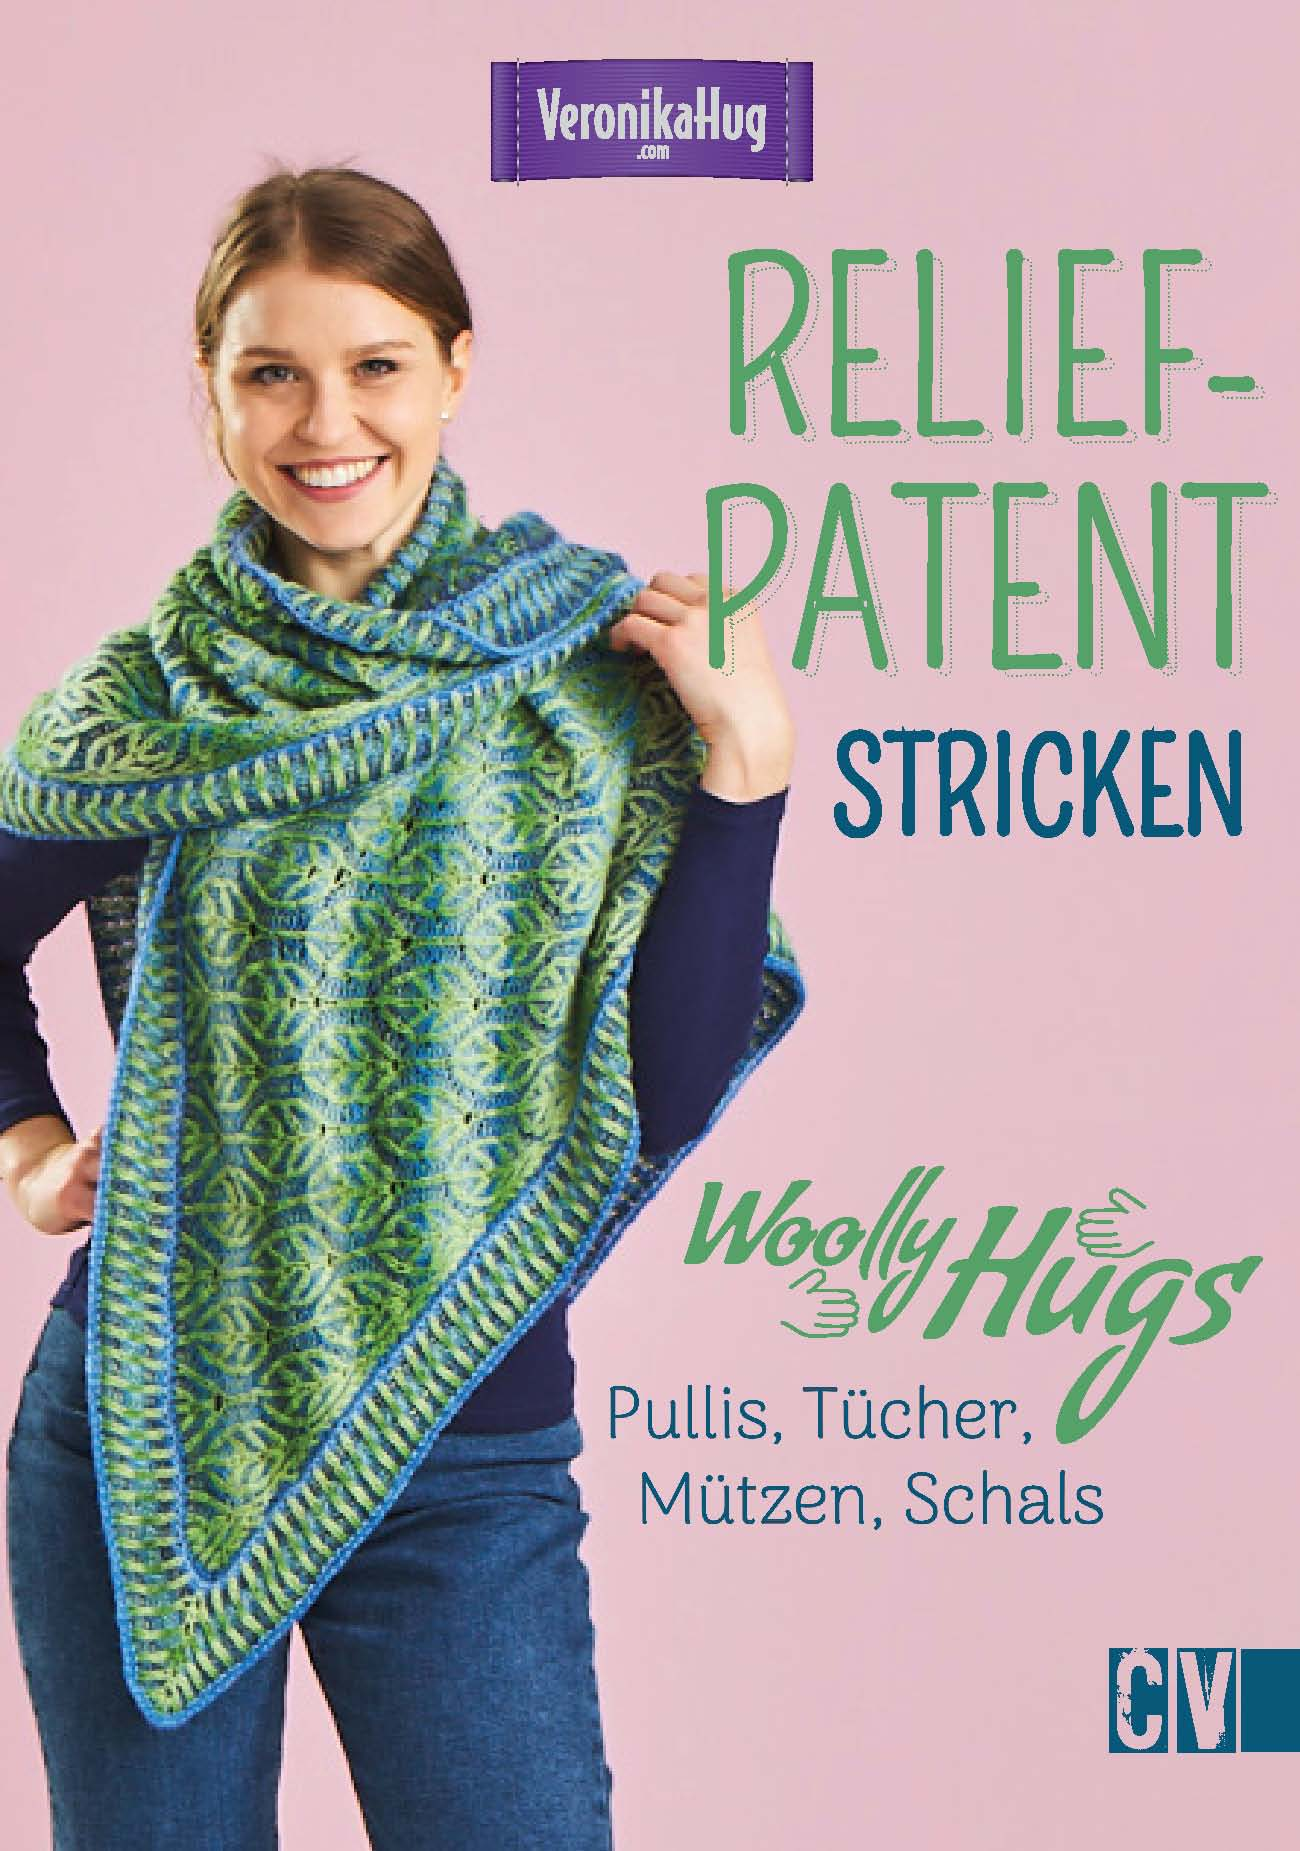 CV 6537 Wolly Hugs Relief-Patent stricken